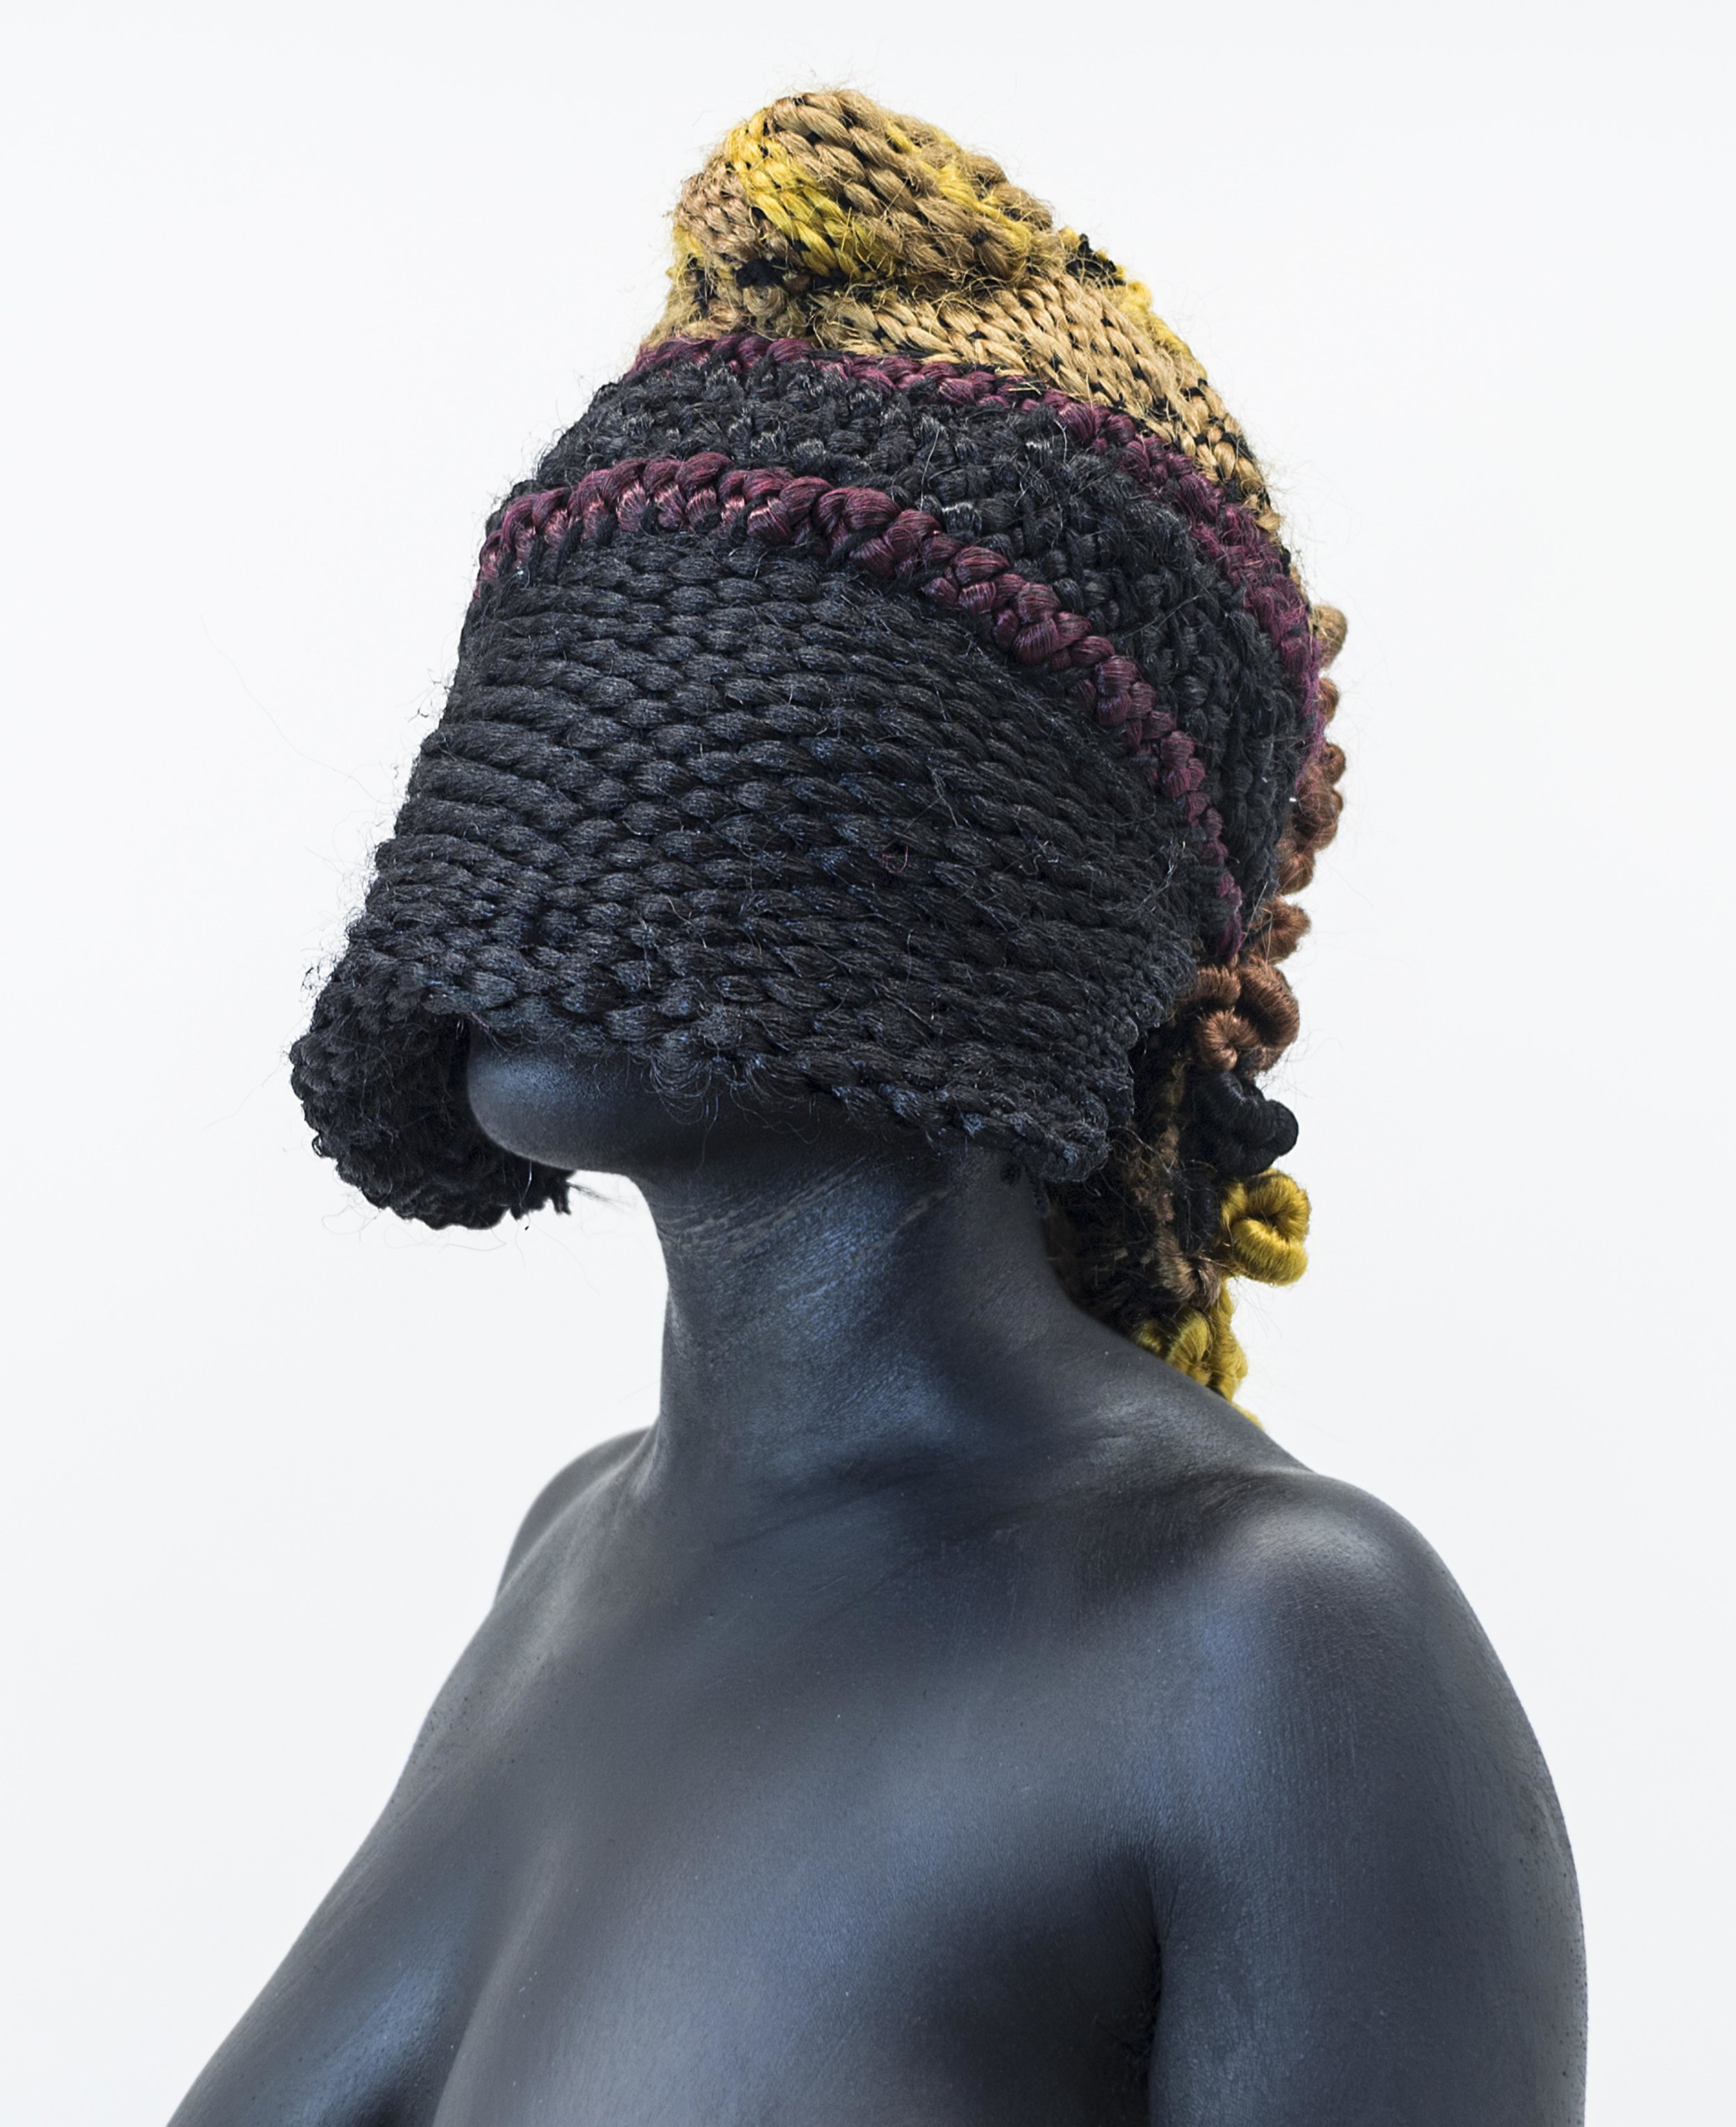 """Stephanie J. Woods,  Weave Idolatry II , 2015, Photograph (hand woven synthetic hair weave, black body paint) with salvaged antique gold frame, 28.5"""" X 23.5"""", Edition 1 of 2"""